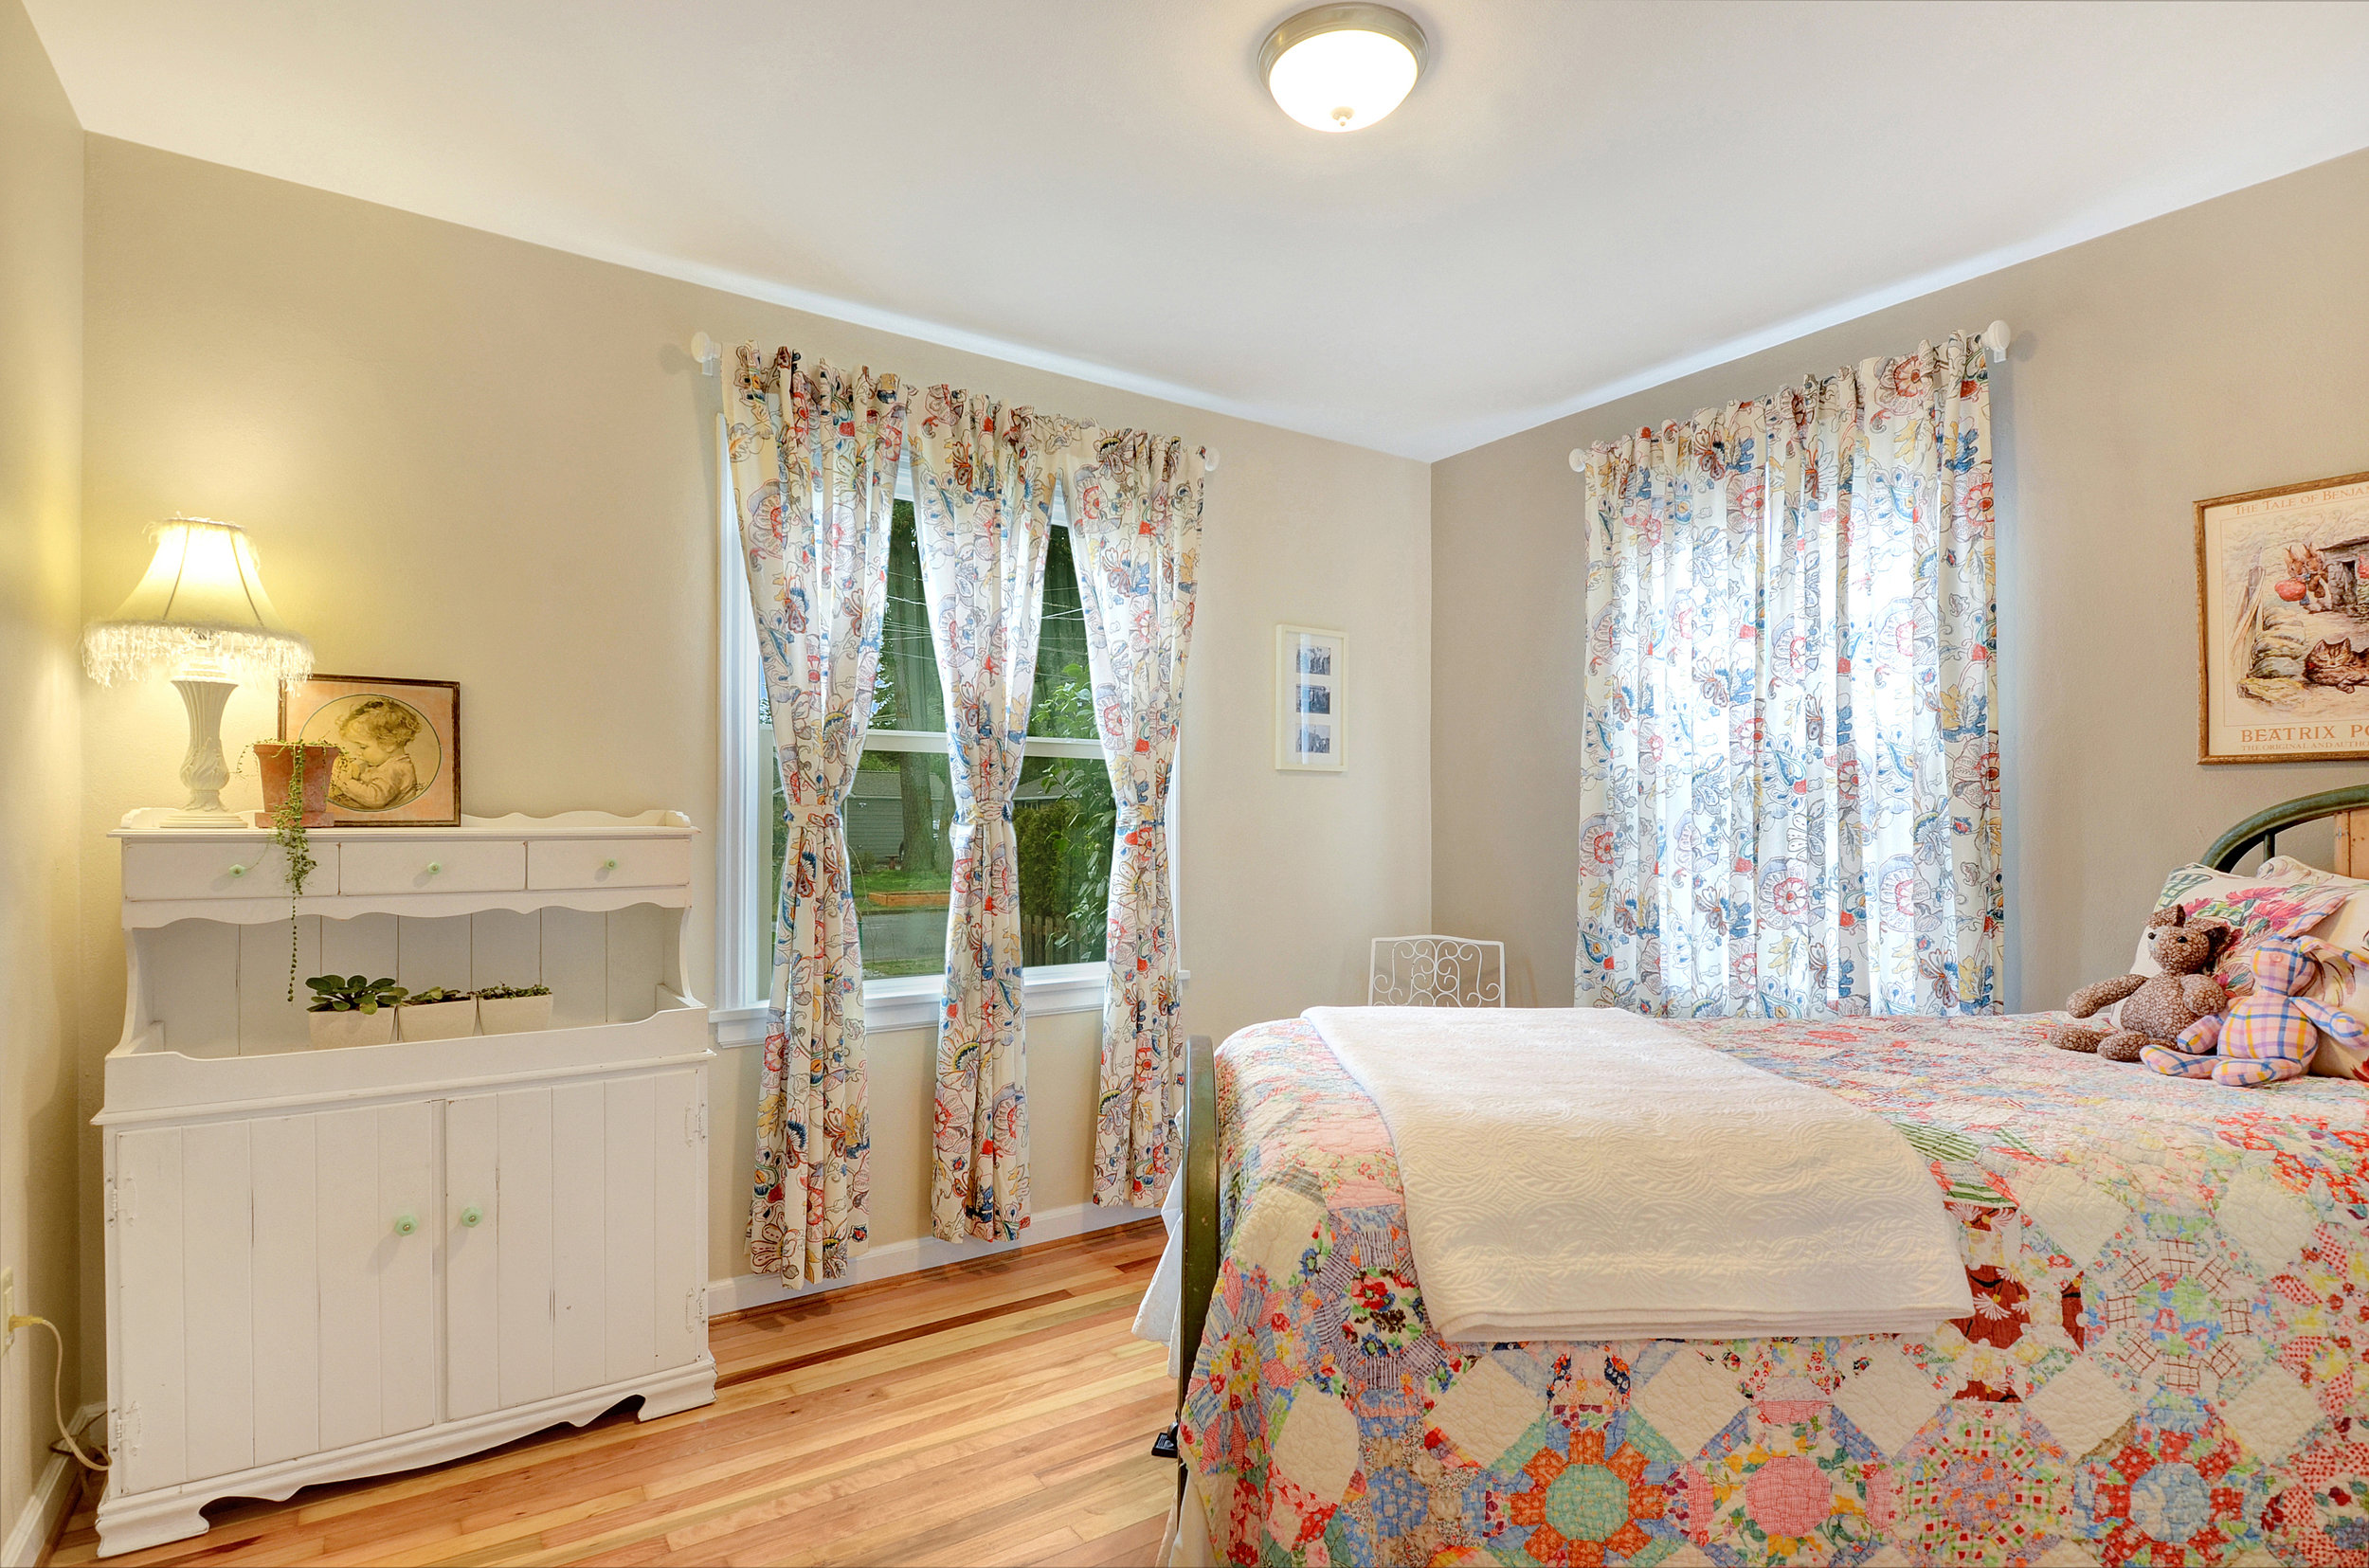 Just down the hall find the bedrooms with their refinished fir floors. This front bedroom is lit by big windows, a new LED ceiling light, and overlooks the front and side yards.